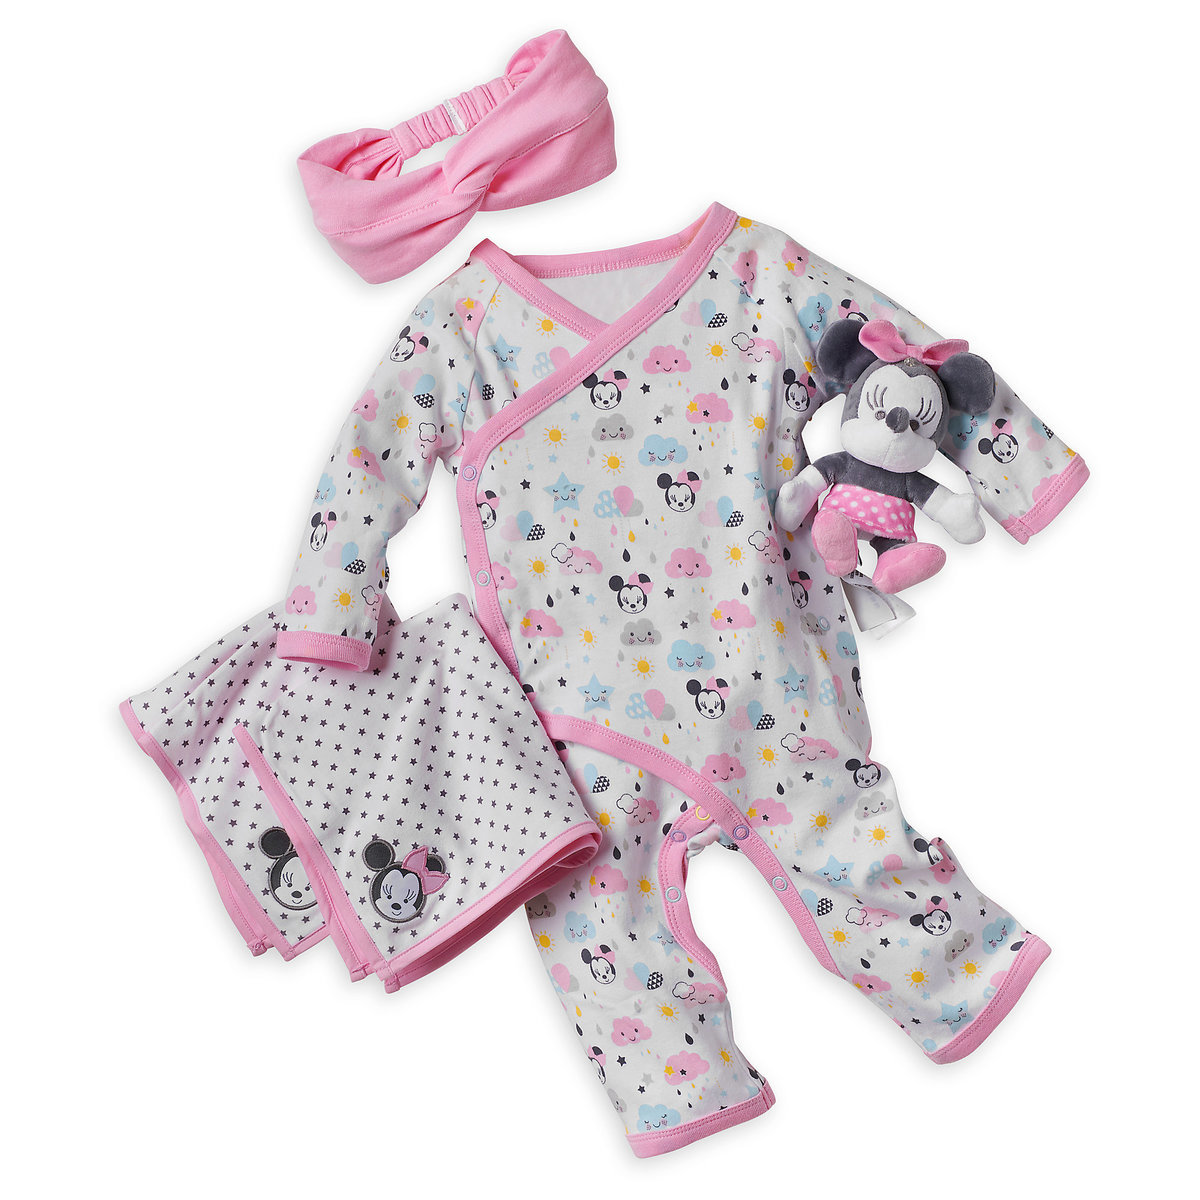 Minnie Mouse Gift Set for Baby | shopDisney